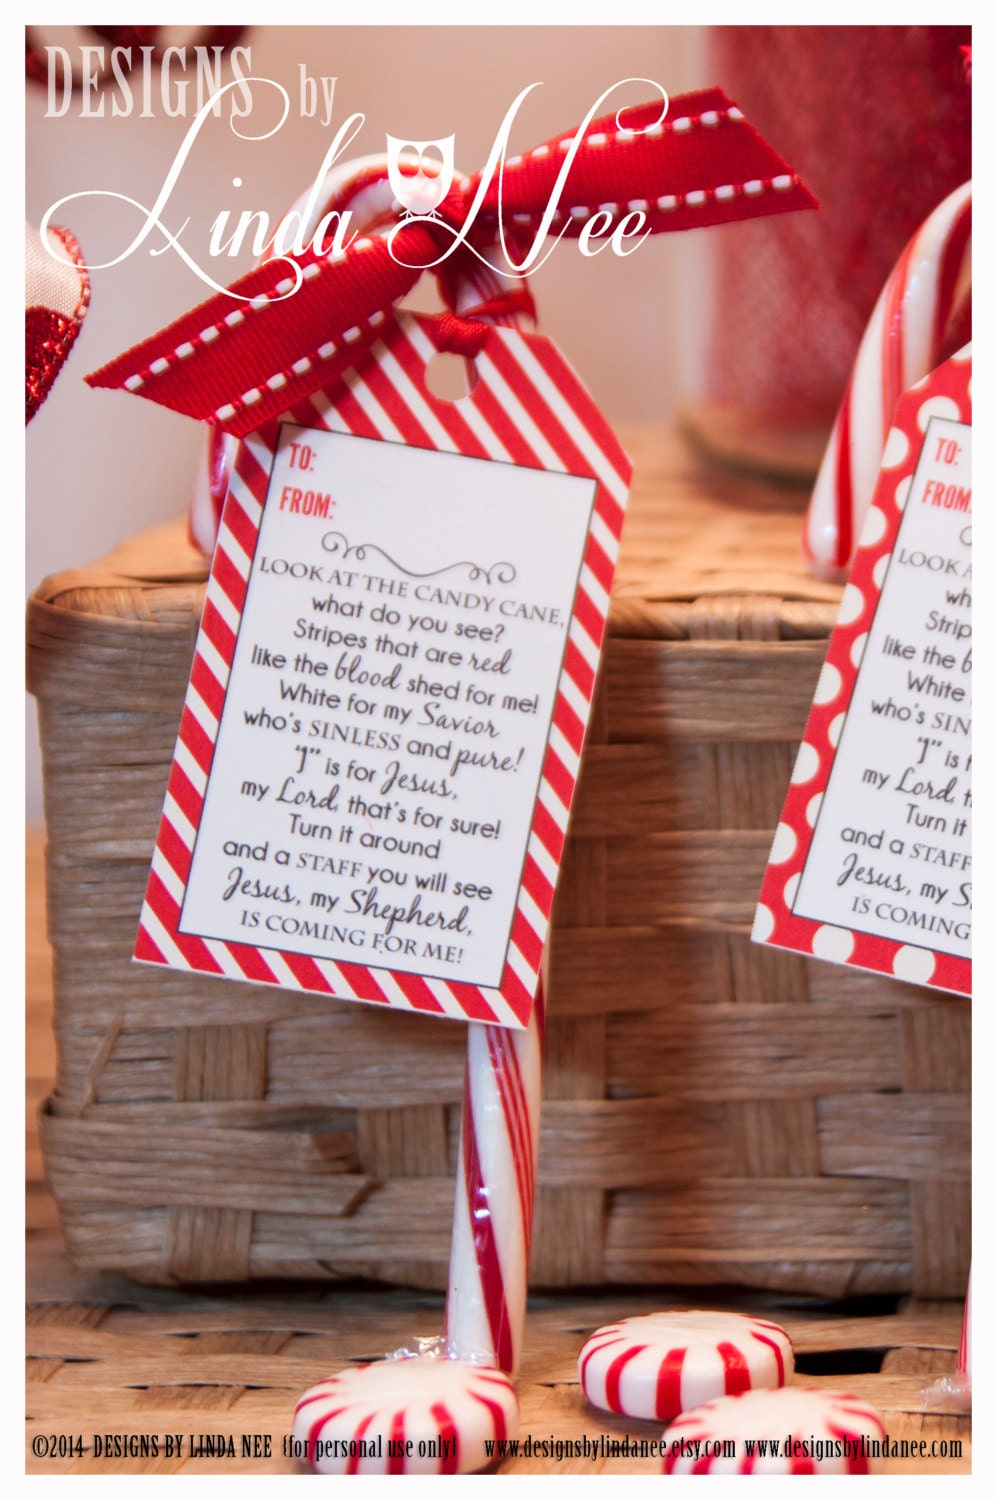 Legend of the Candy Cane Gift Tag Card for Witnessing at